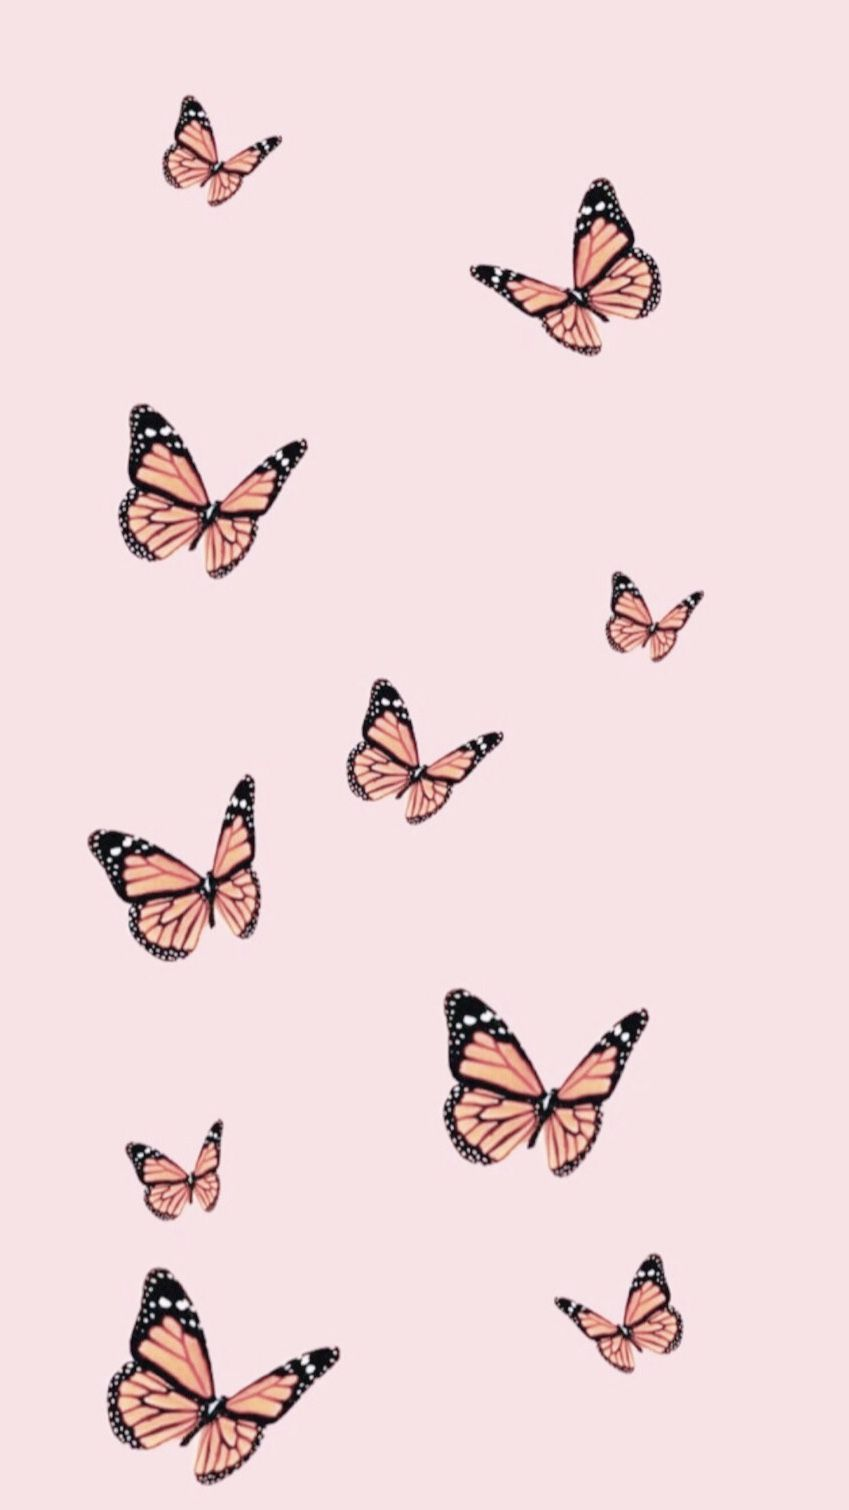 Iphone Rose Gold Aesthetic Tumblr Iphone Rose Gold Butterfly Wallpaper In 2020 Butterfly Wallpaper Iphone Backgrounds Phone Wallpapers Butterfly Wallpaper